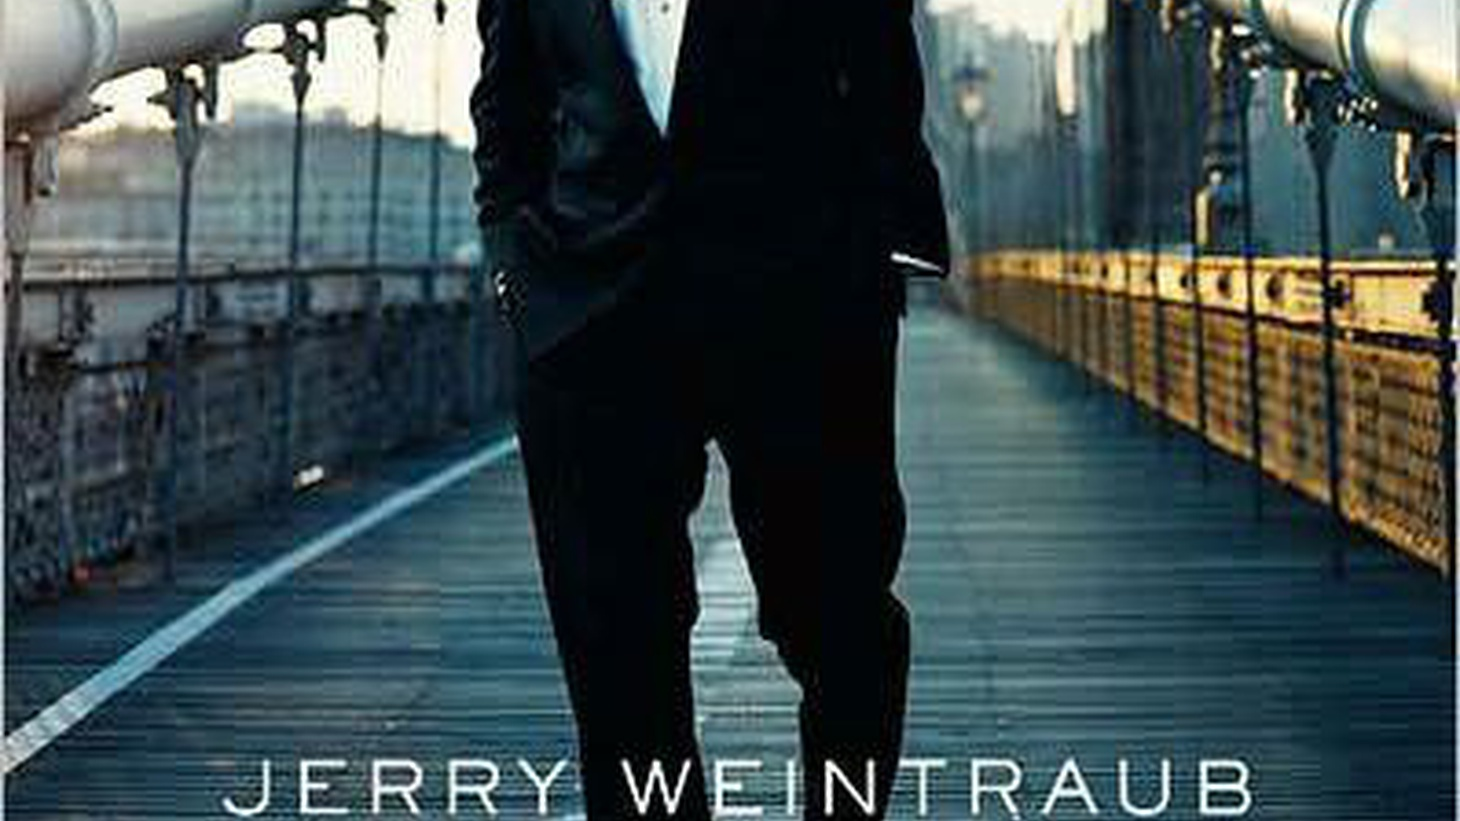 We rebroadcast our 2010 interview with producer and Hollywood impresario Jerry Weintraub, currently the subject of the HBO documentary, His Way.